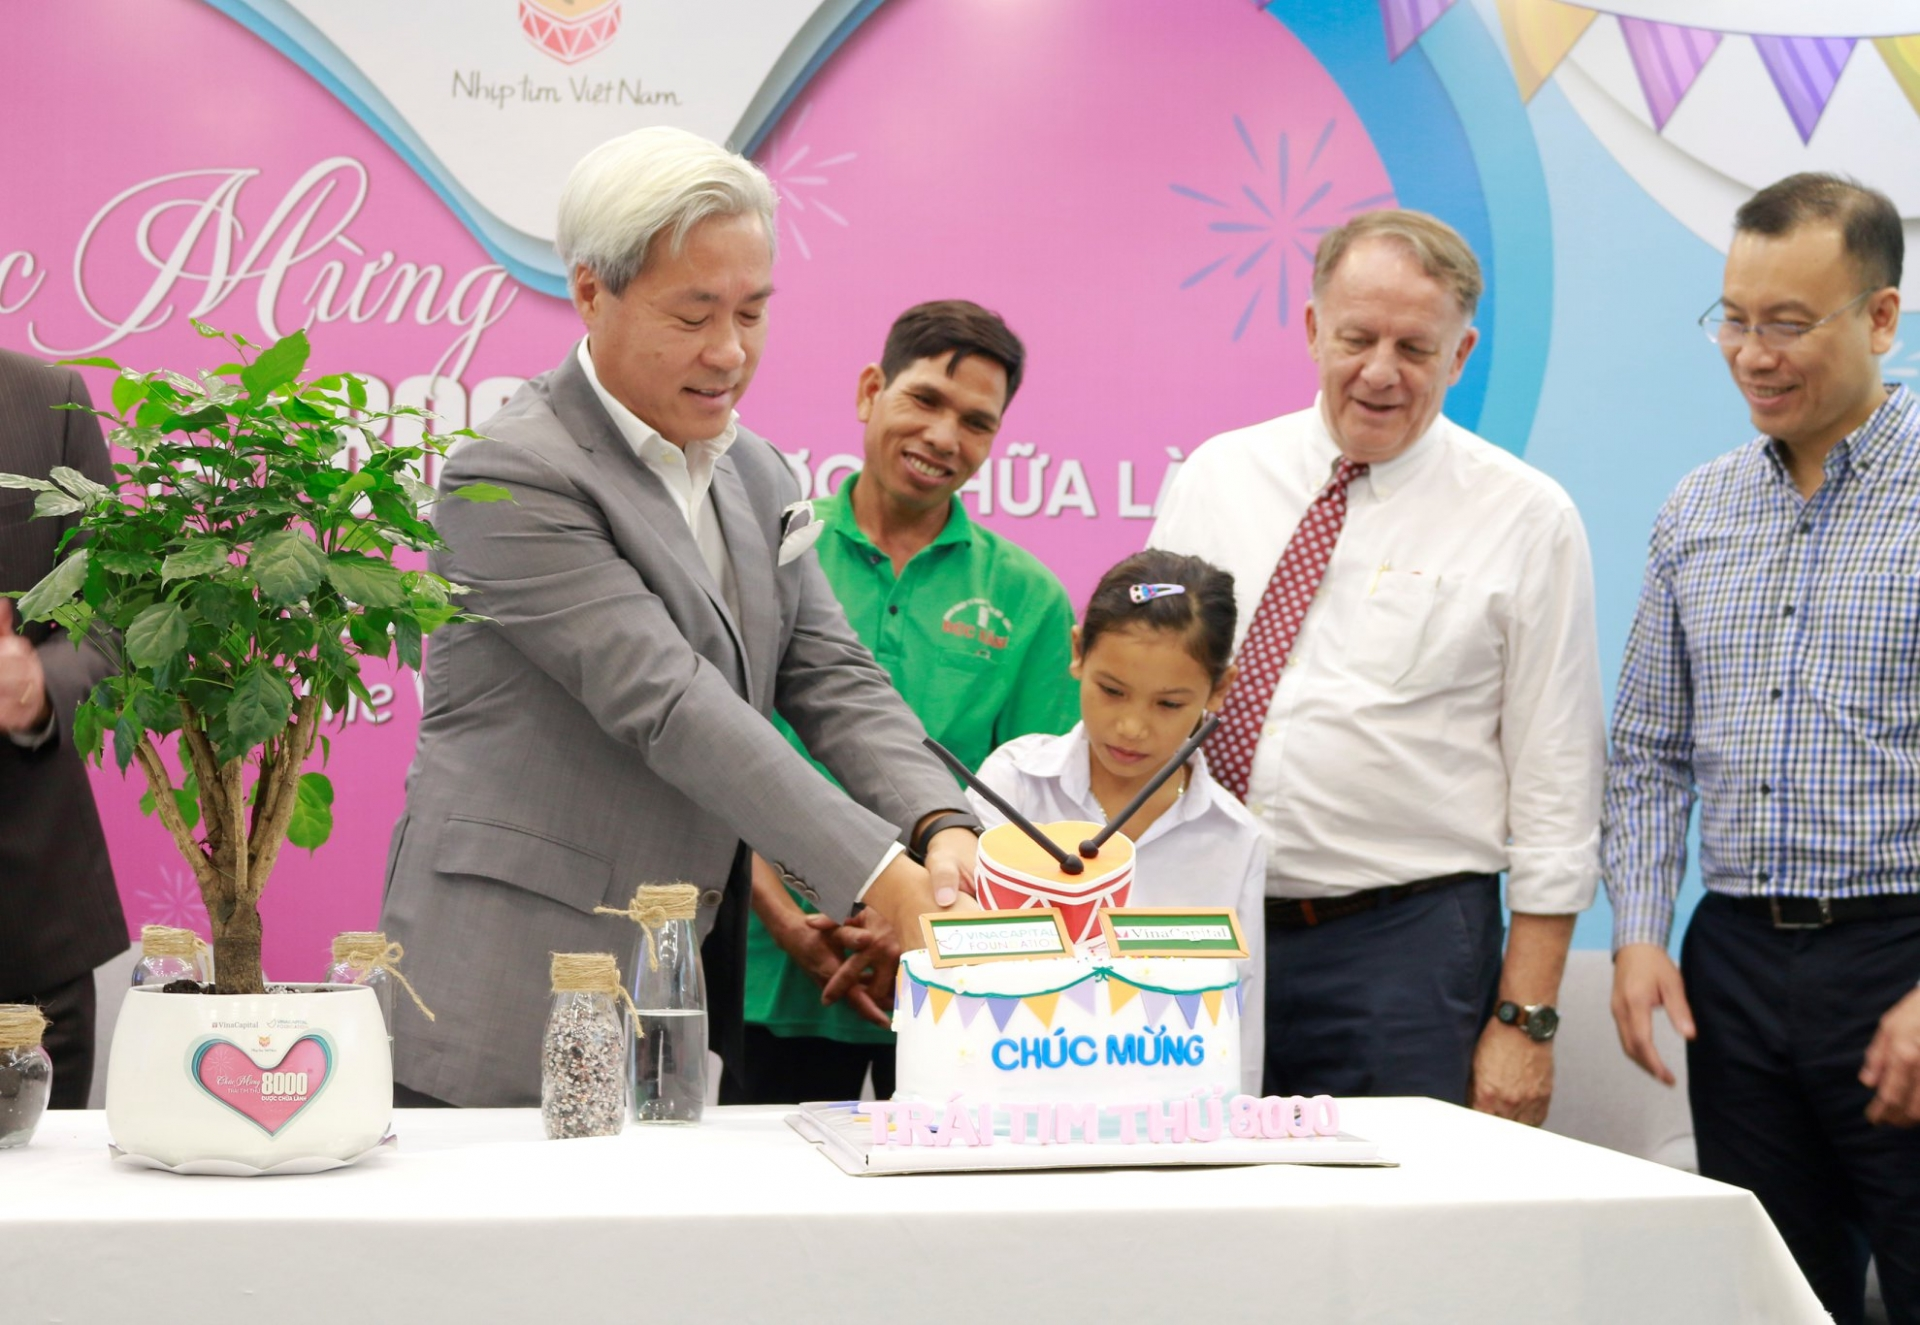 Heartbeat Vietnam funds heart operations for 8,000 children